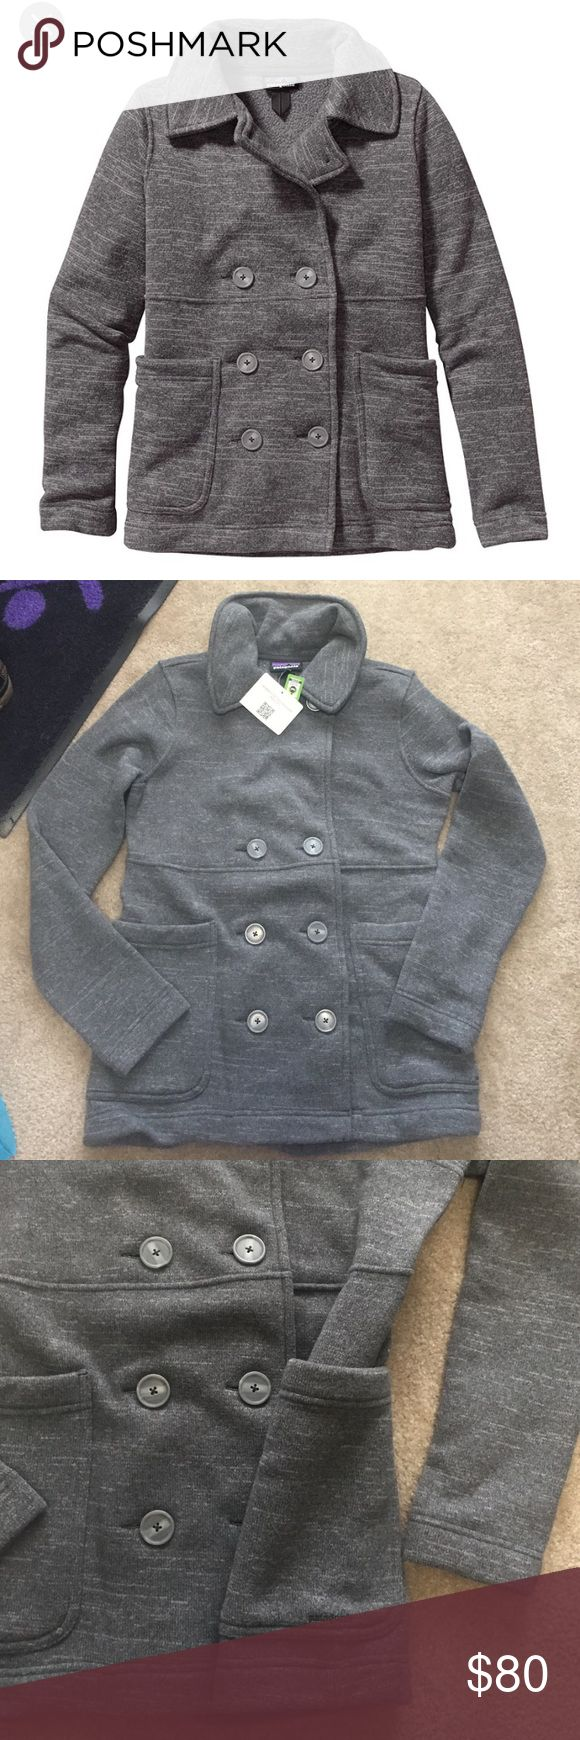 NWT Women's Patagonia Better Sweater Peacoat Med My sister bought me this for Christmas but it's a little too small on me! Wanting to sell to be able to buy a different jacket! No trades please. Reasonable offers are considered. Patagonia Jackets & Coats Pea Coats